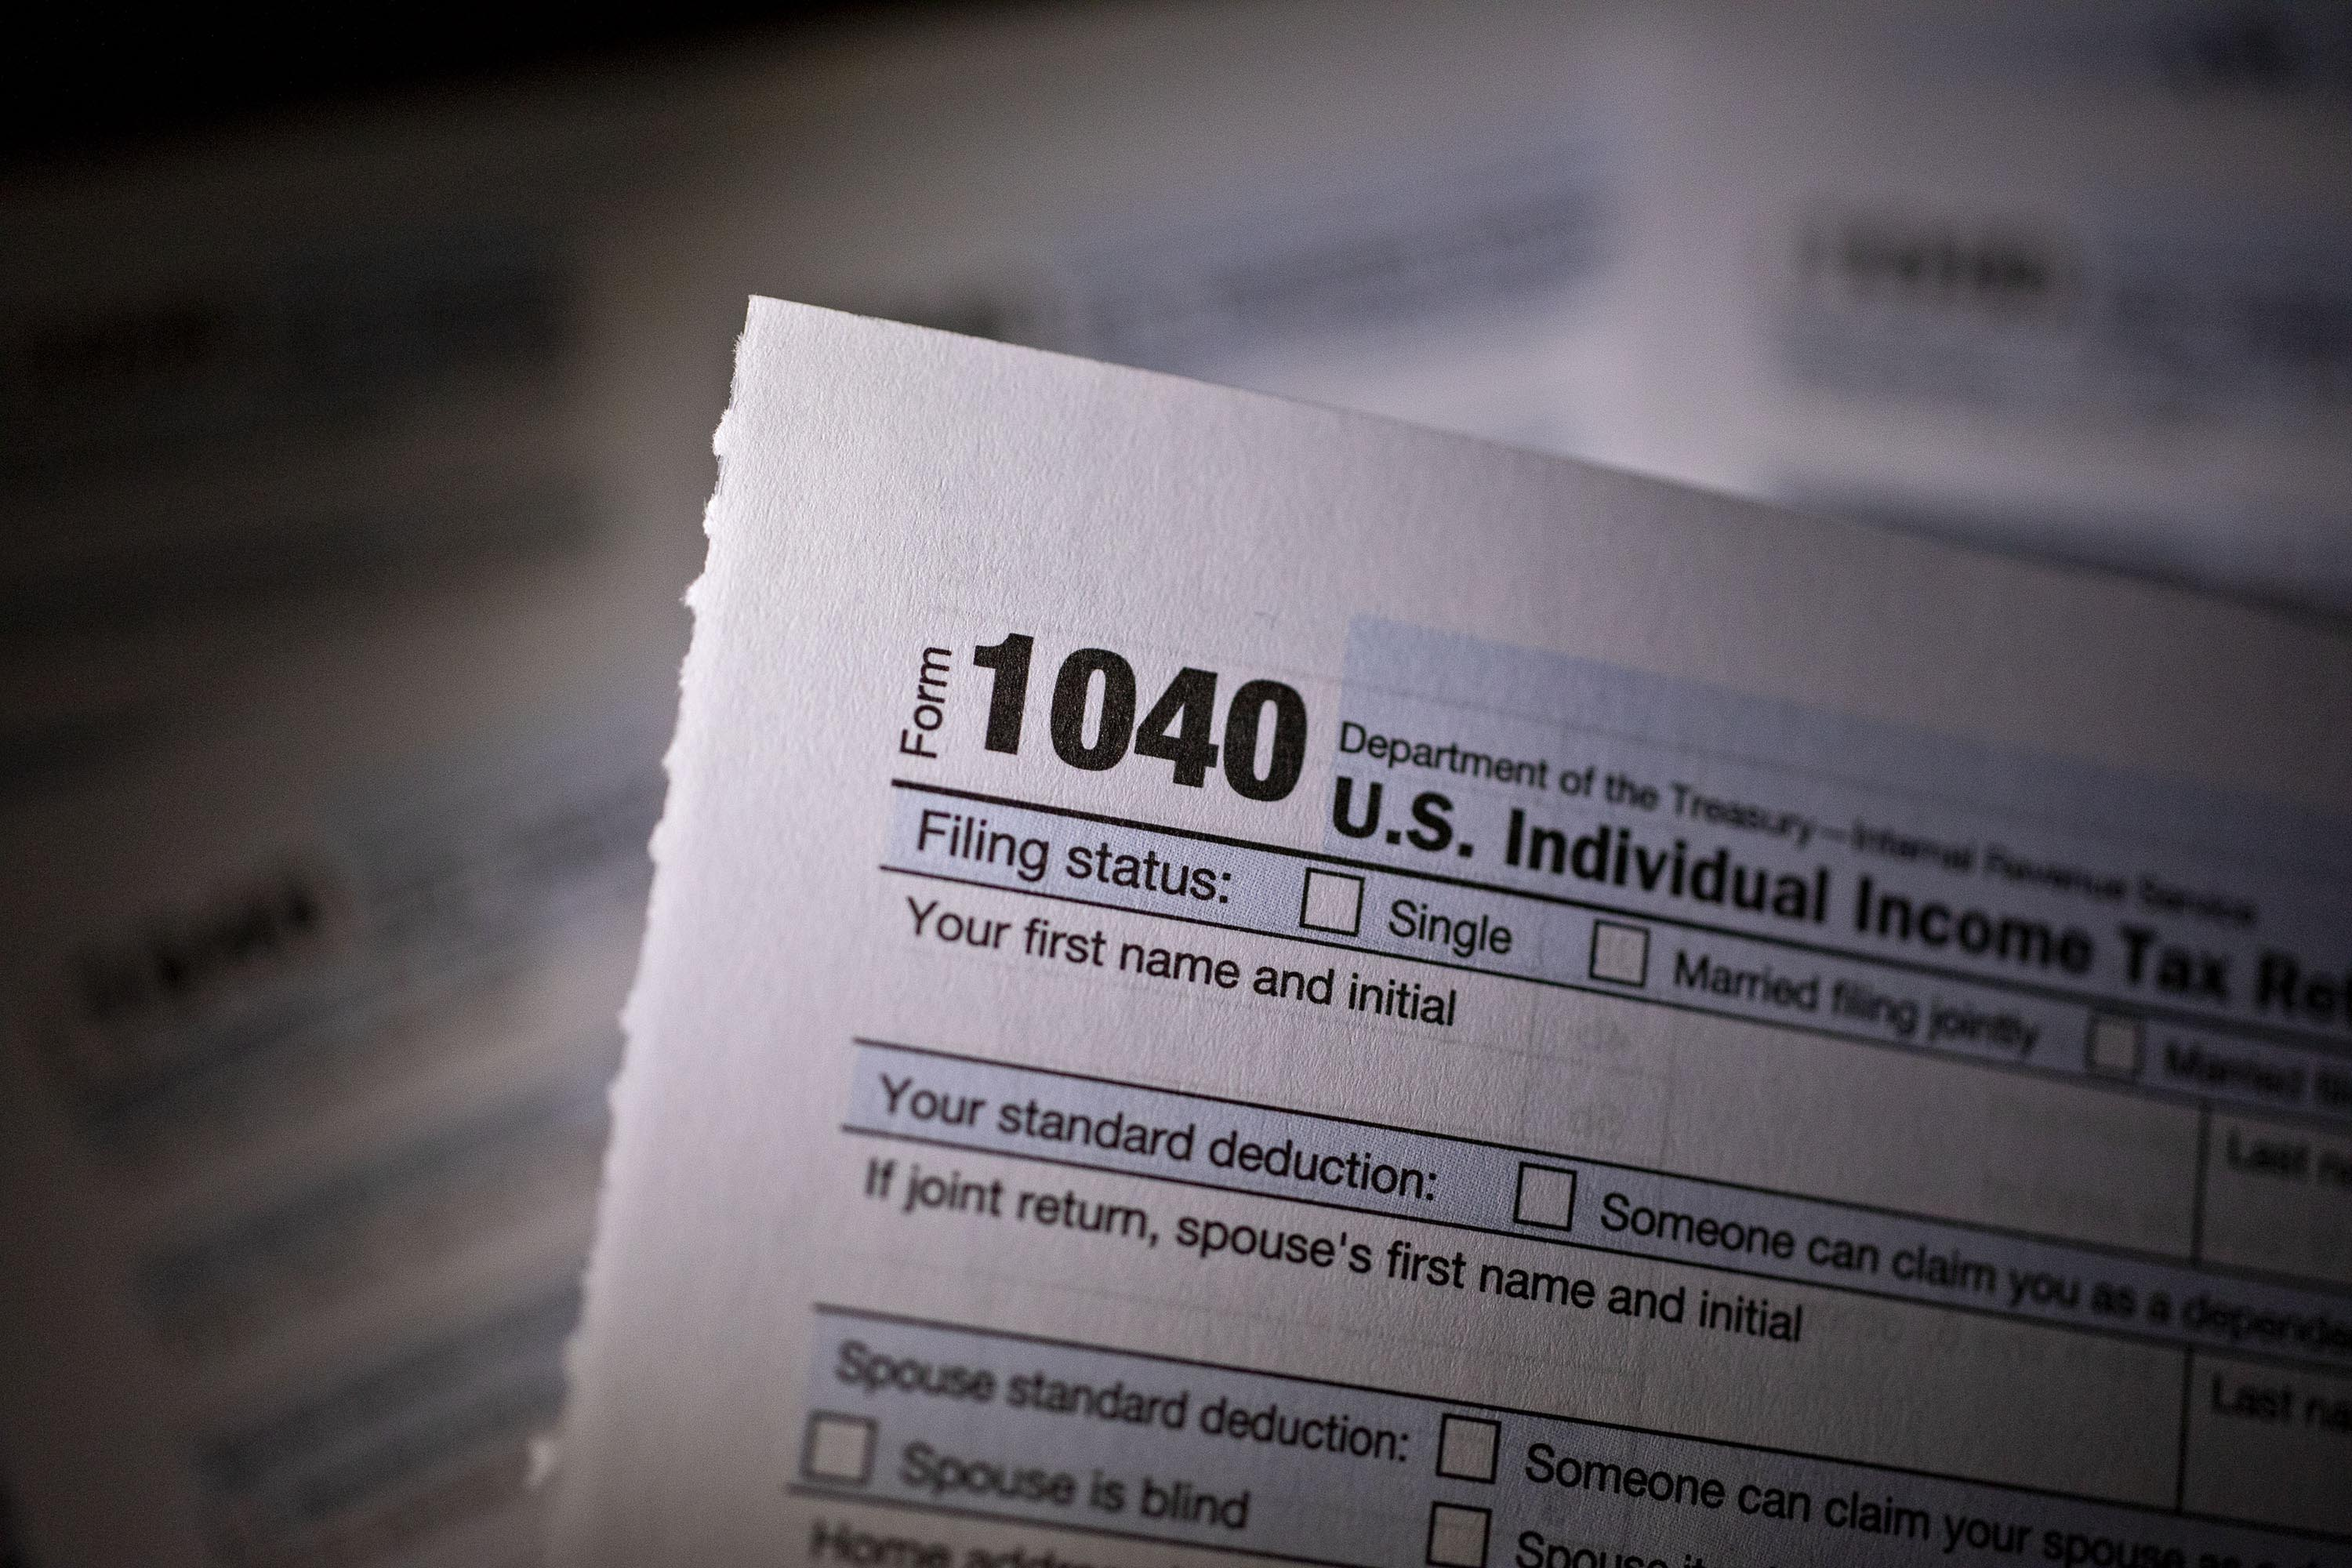 Huge backlogs and broken printers plague IRS, taxpayer advocate reports